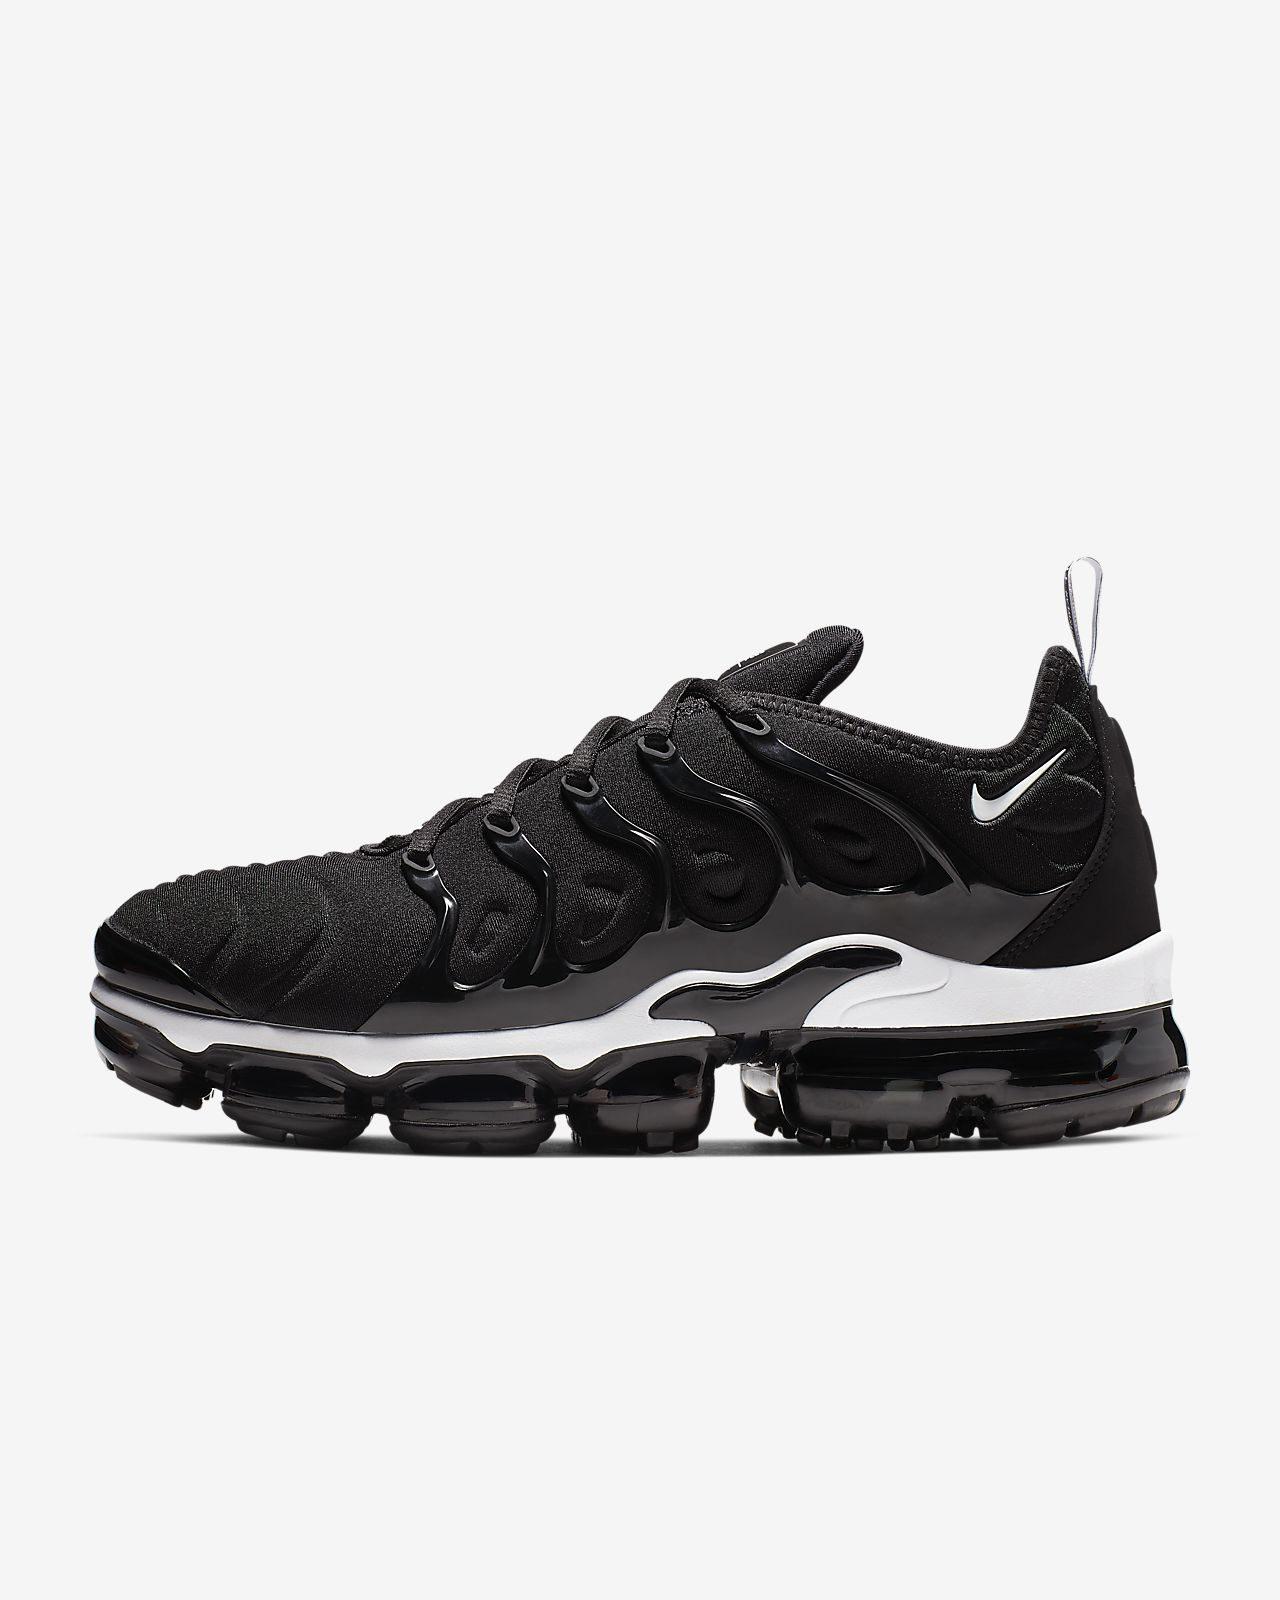 16e33bd8ab9 Nike Air VaporMax Plus Men s Shoe. Nike.com GB